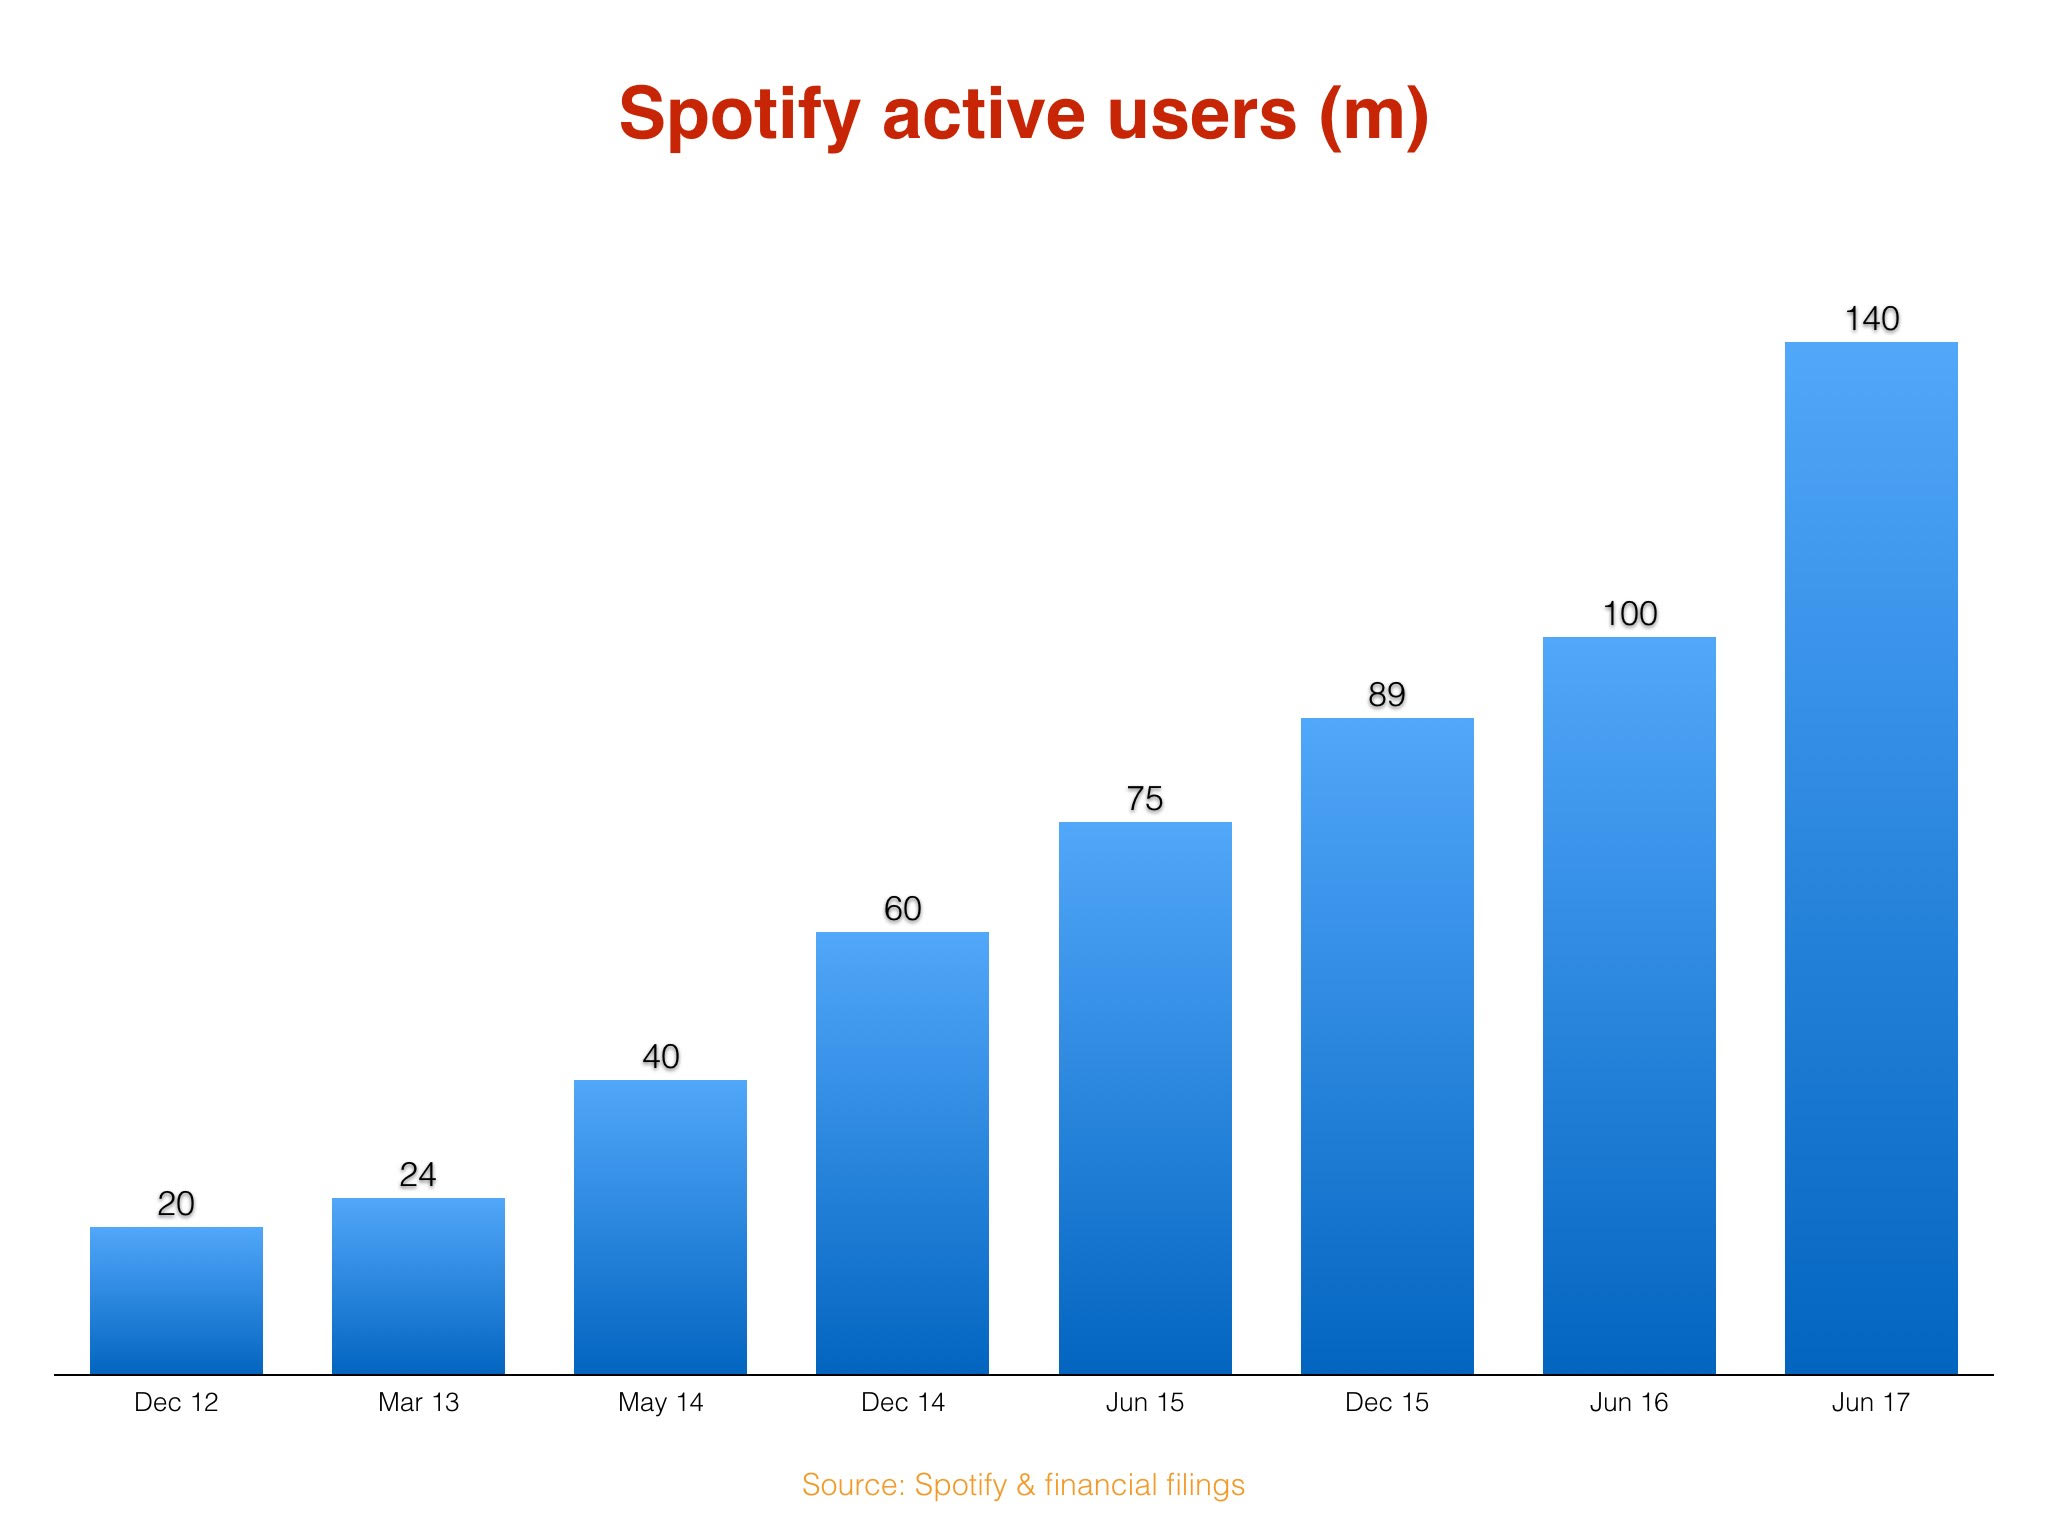 Spotify Now Has 140 Million Monthly Active Users